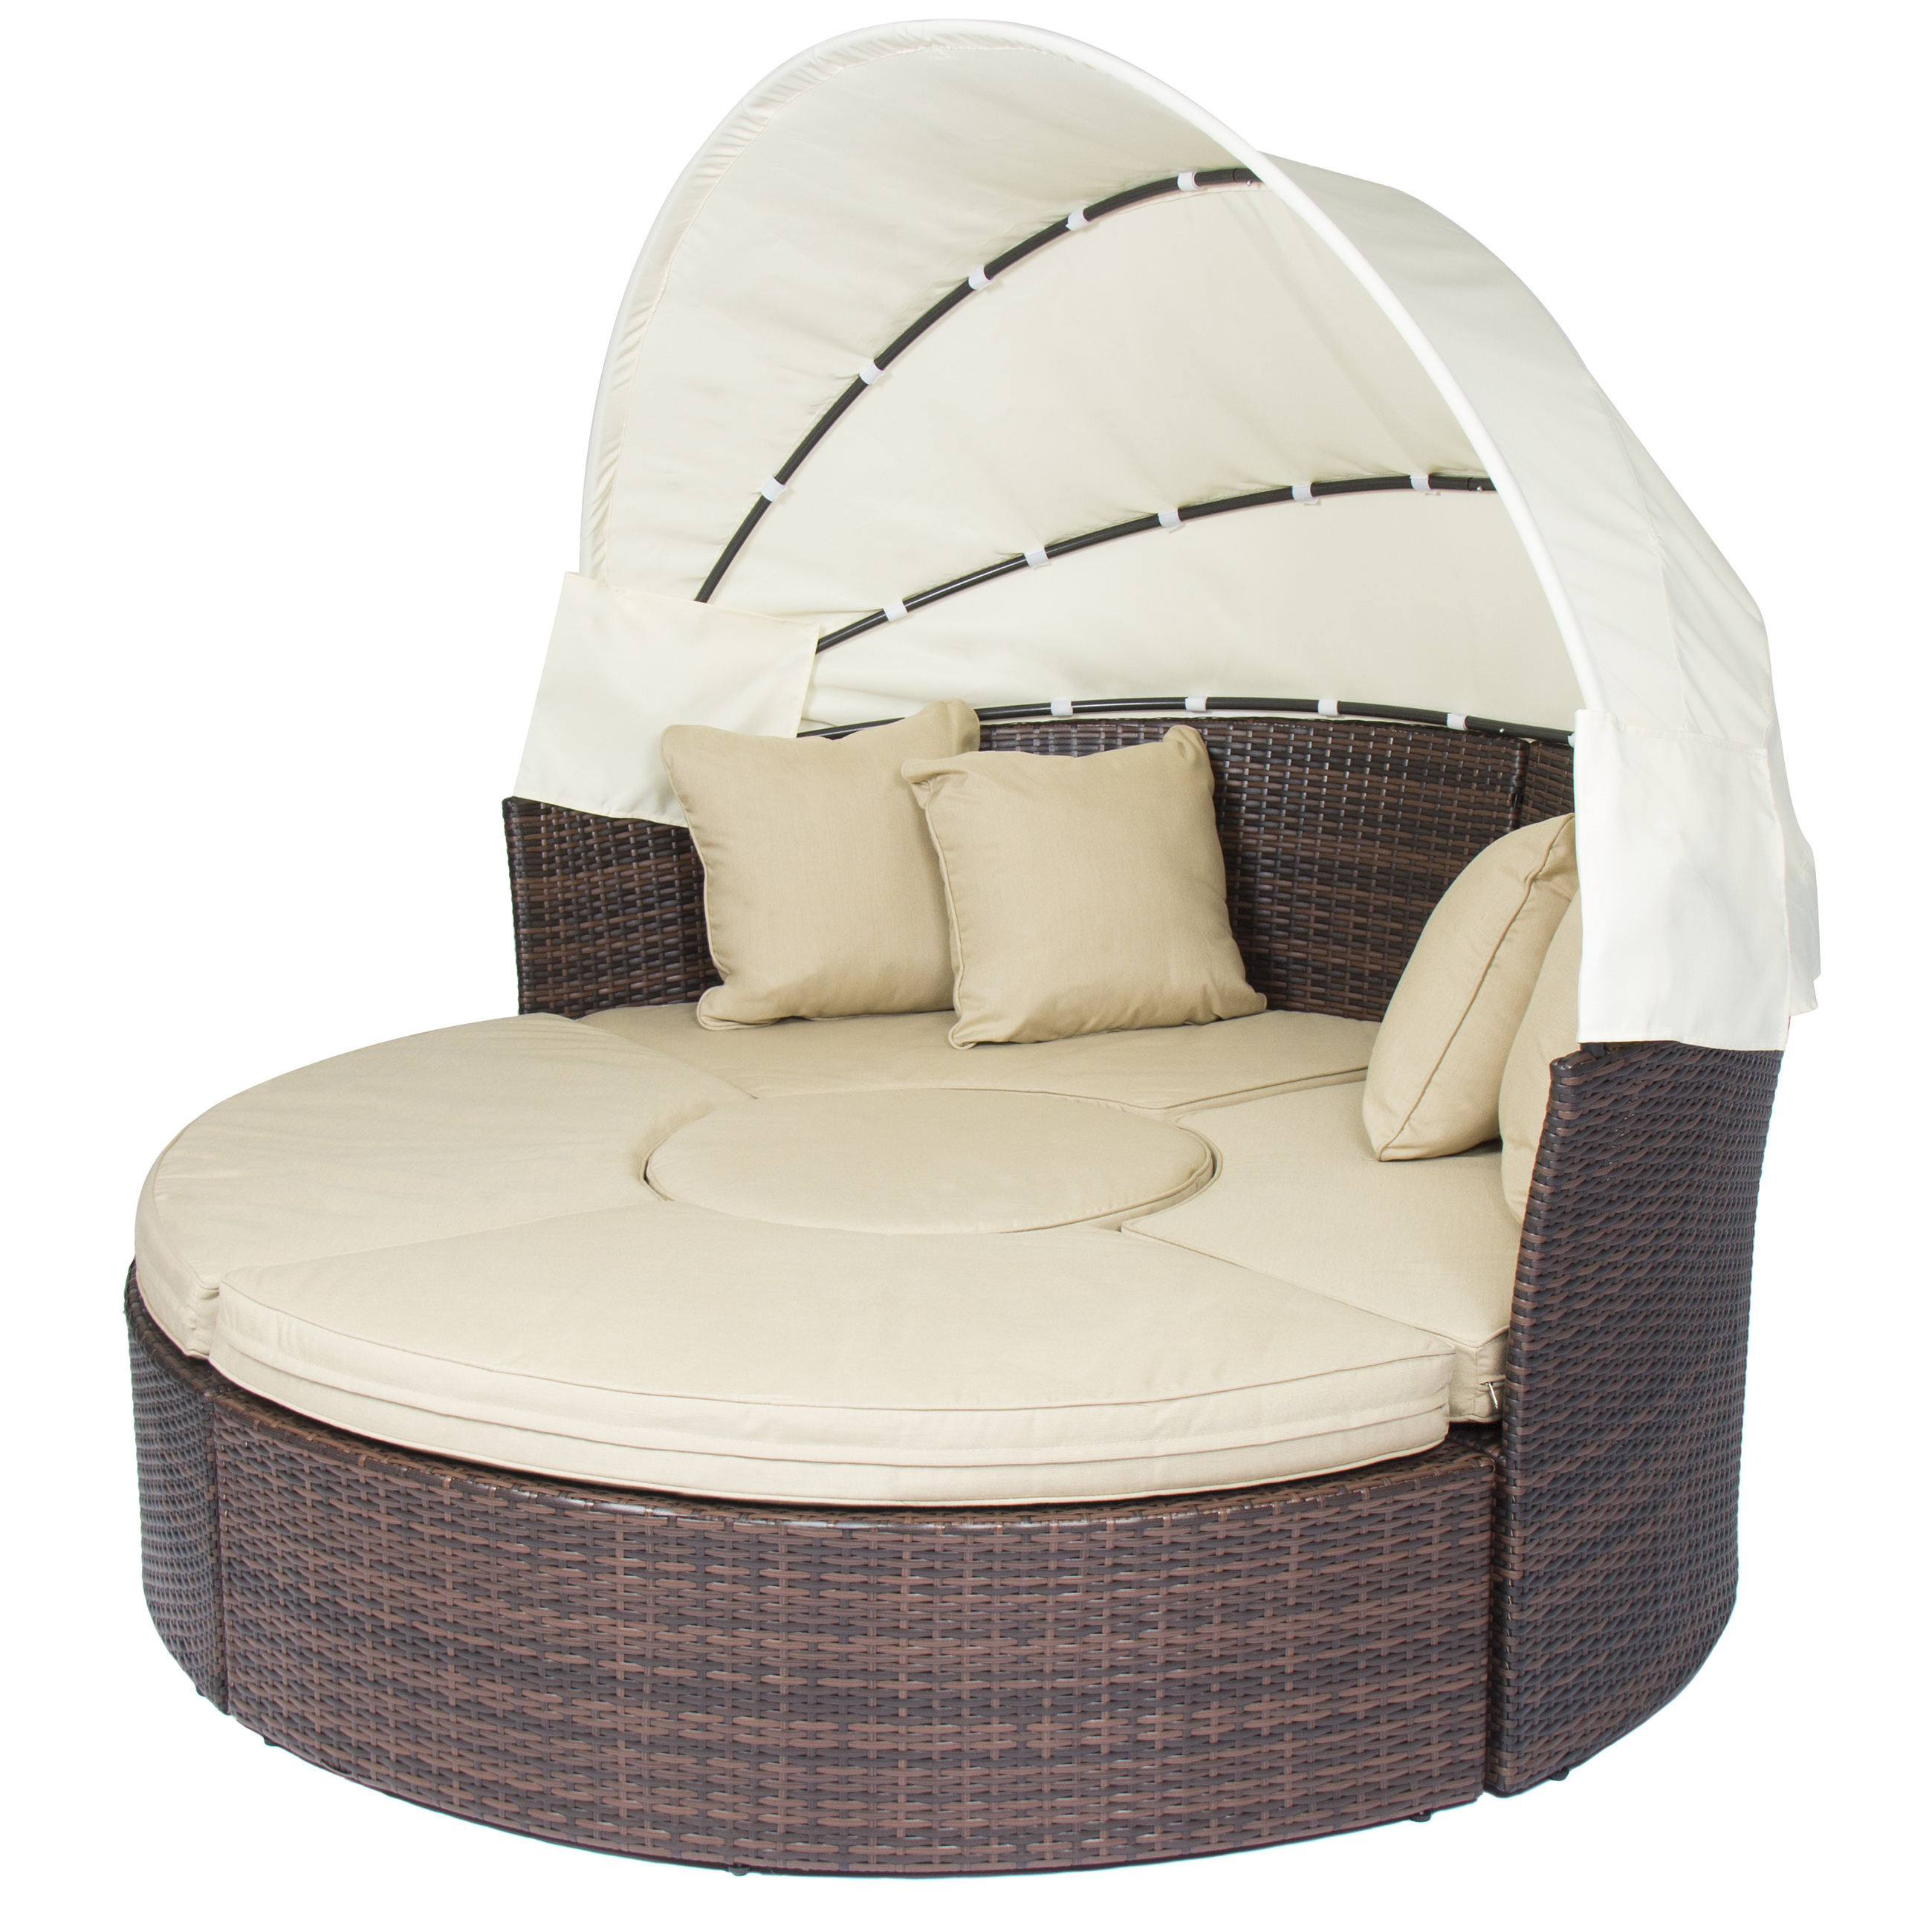 Fashionable Round Sofa Chairs For Best Choice Products Outdoor Patio Sofa Furniture Round Retractable (Gallery 10 of 20)